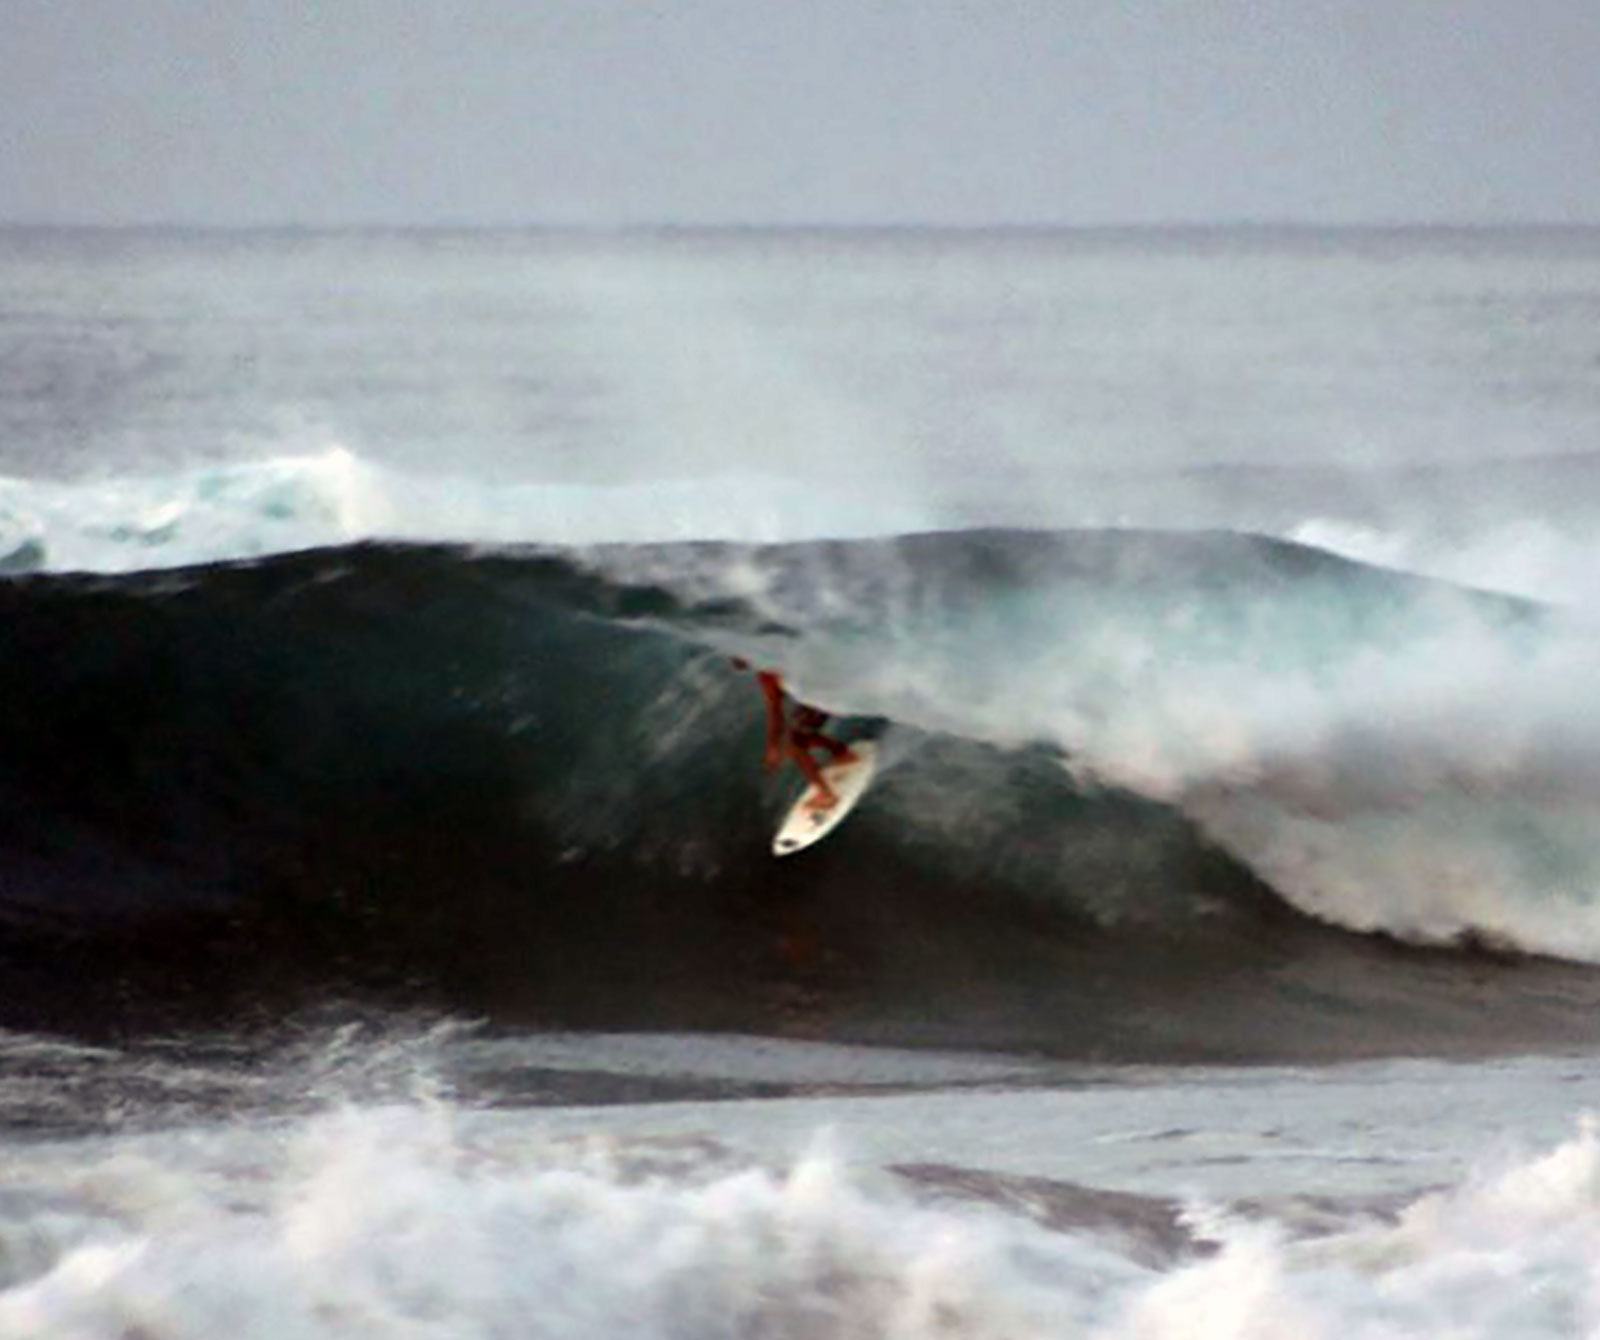 Josh Mulcoy Sand Point Hound, Salina Cruz, Oaxaca, Mexico, Las Palmeras Surf Camp